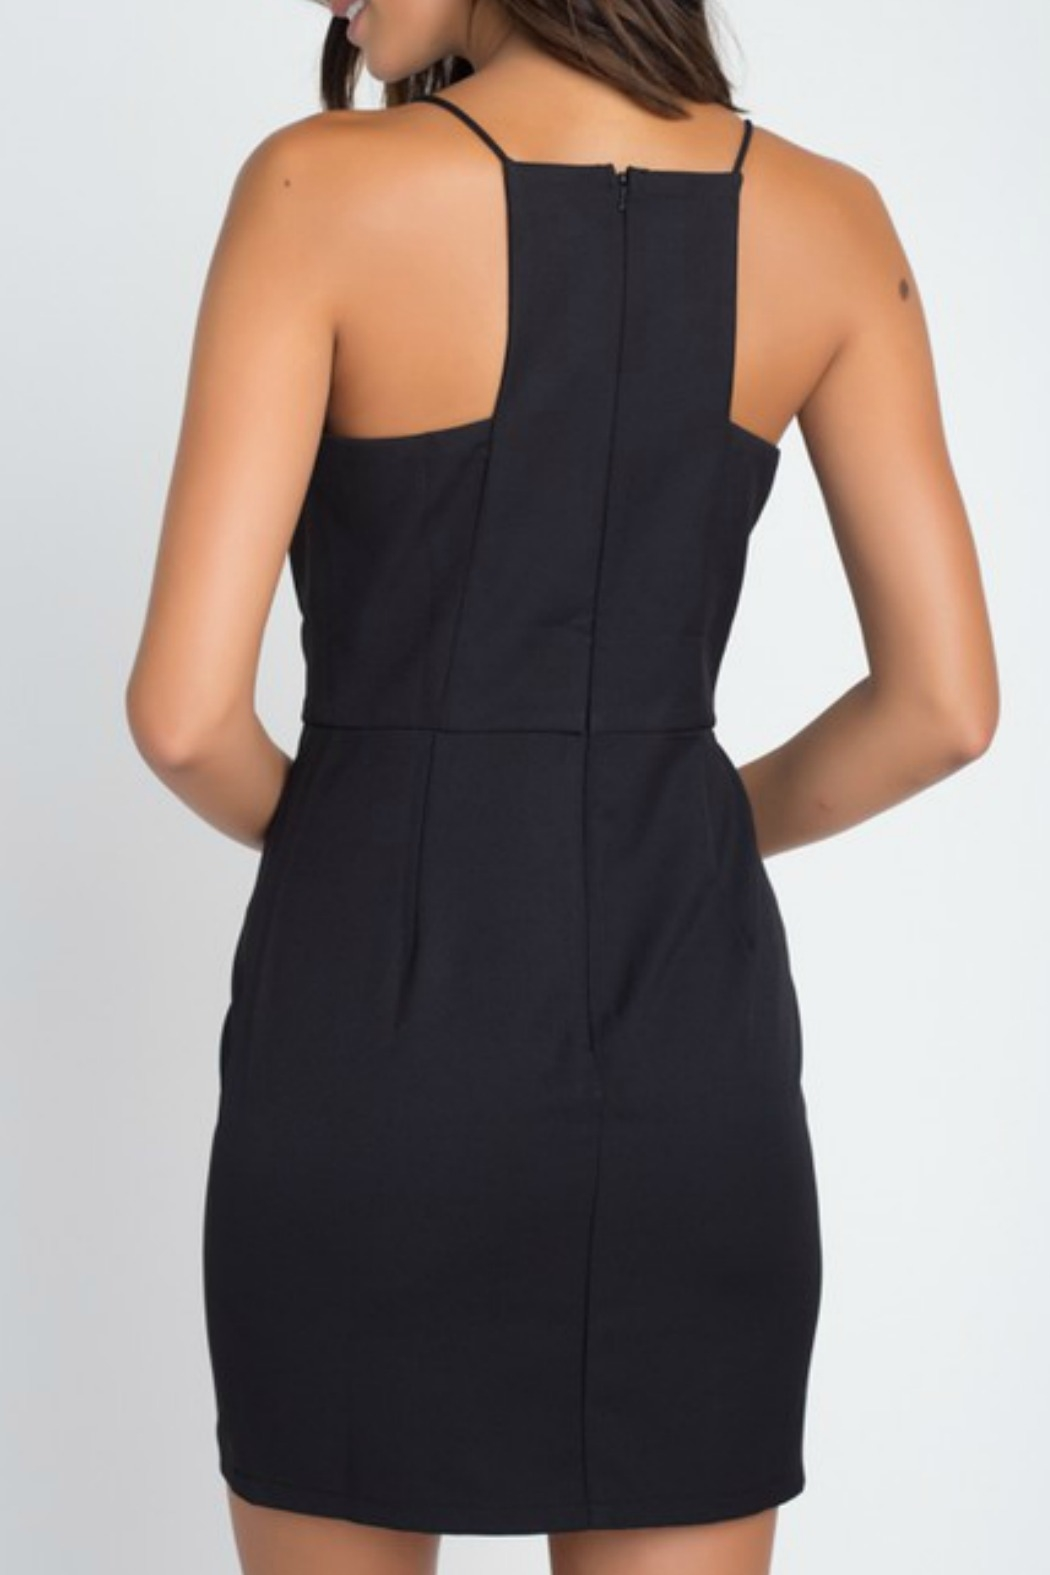 Minuet Square Neck Cocktail Dress - Front Full Image